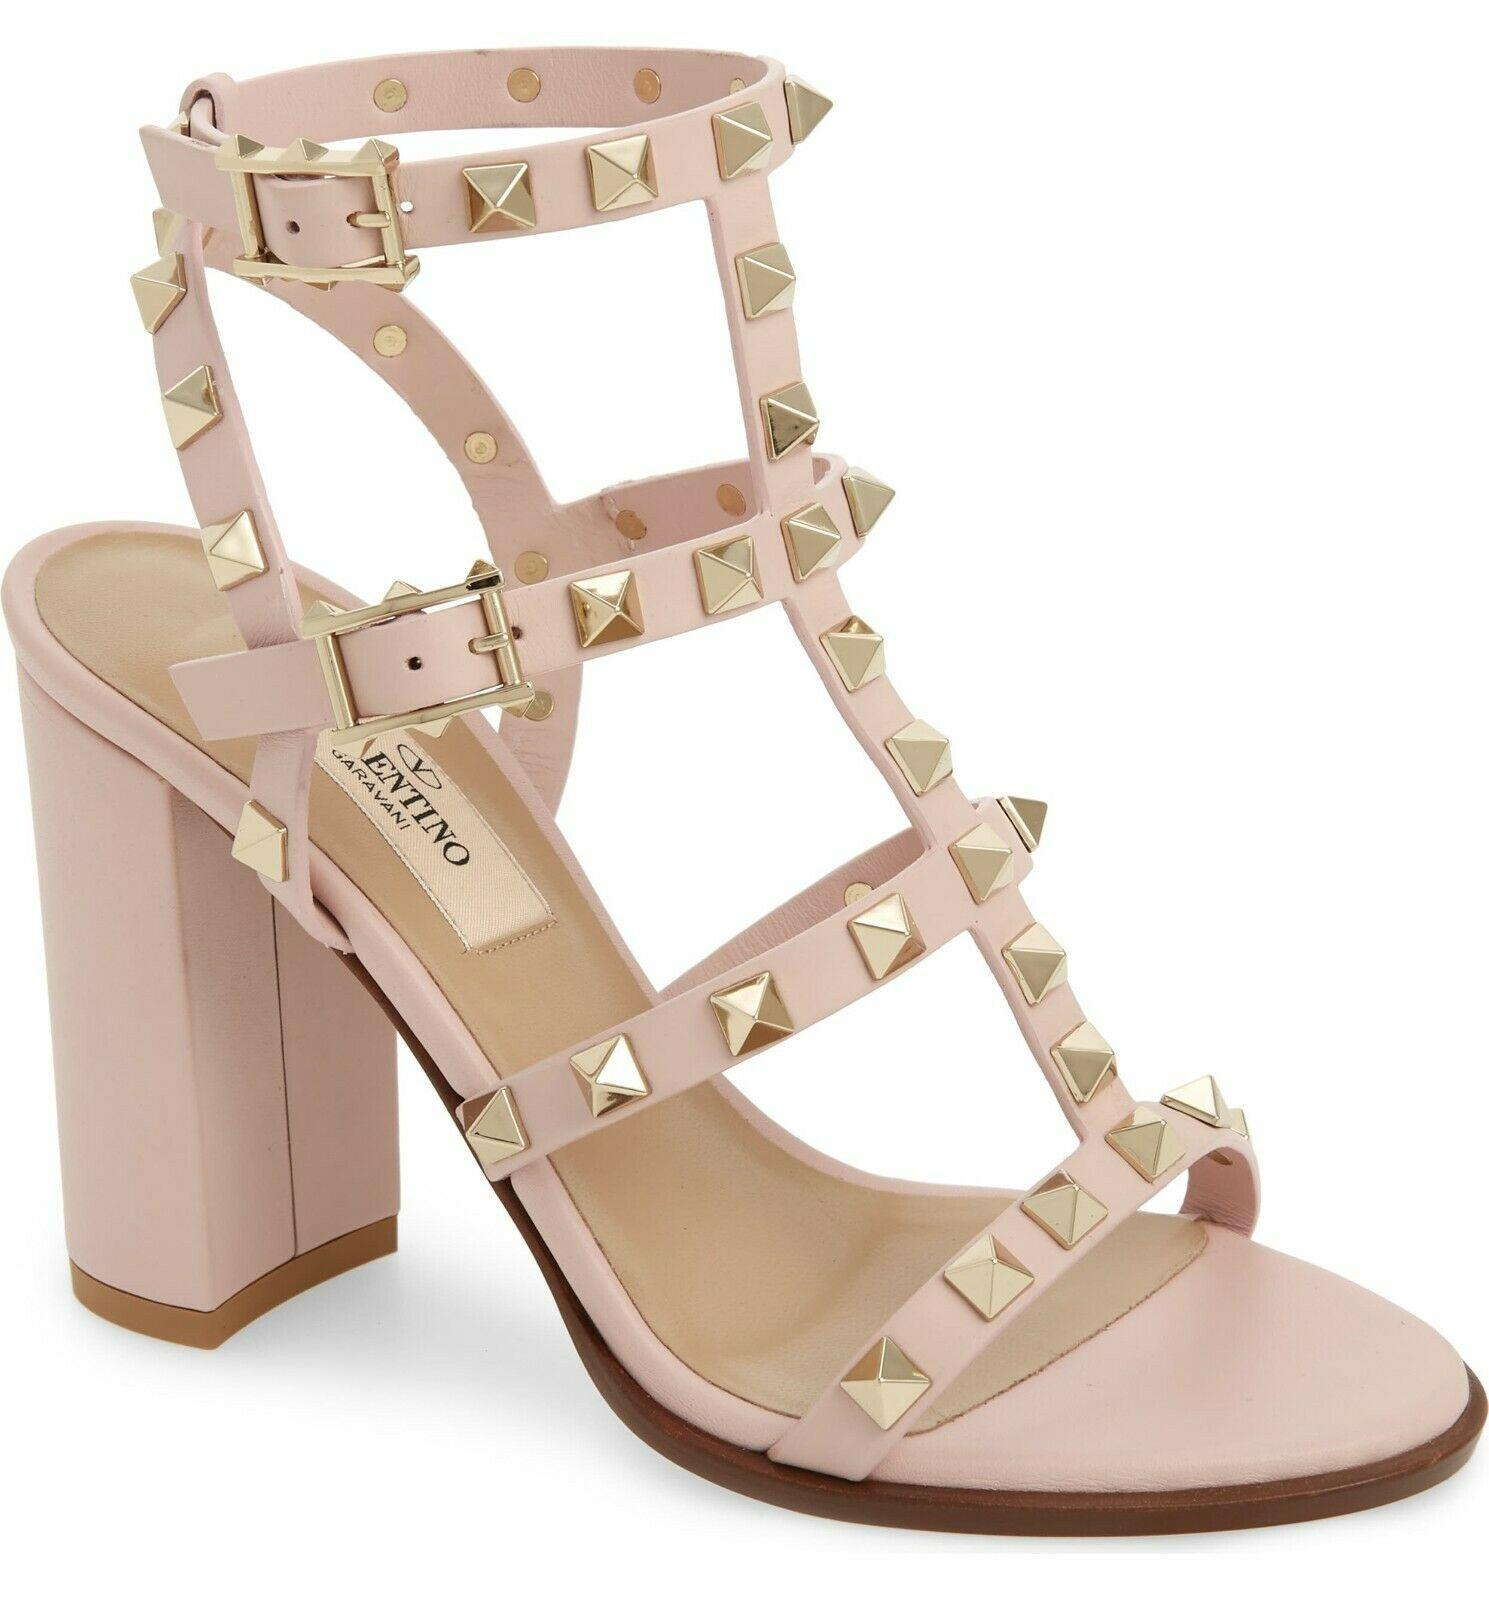 Valentino Rockstud T-Strap Rose Leather Cage Sandals Slingback Pumps Shoes 37